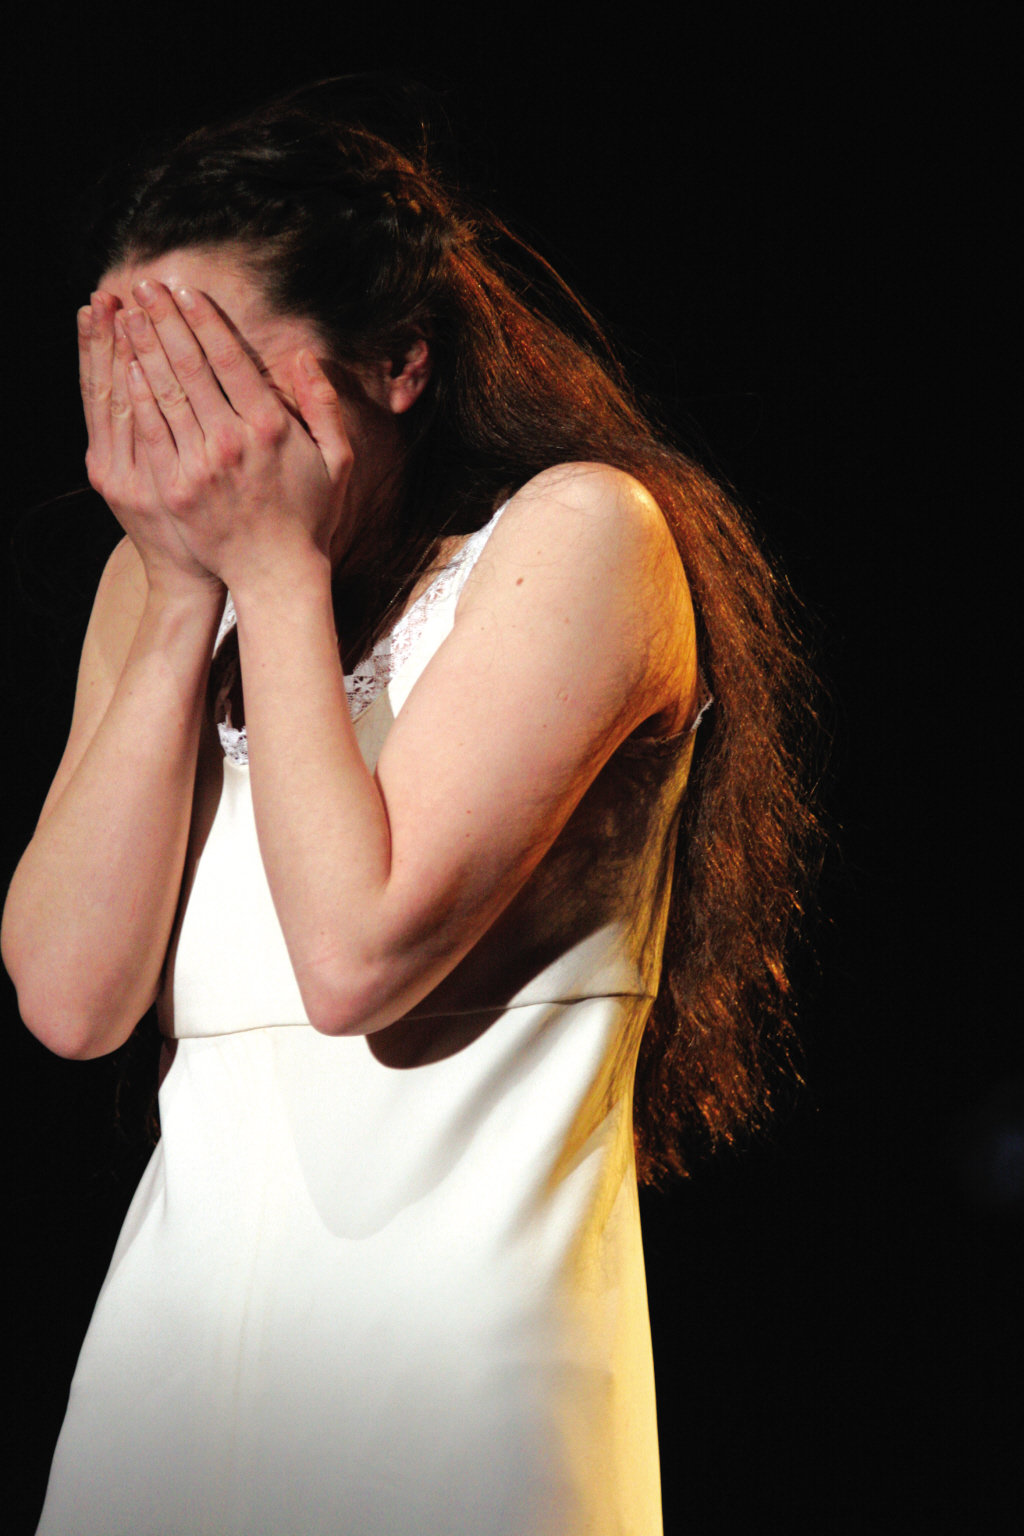 Juliet covers her face and cries, dressed in a simple white night dress.